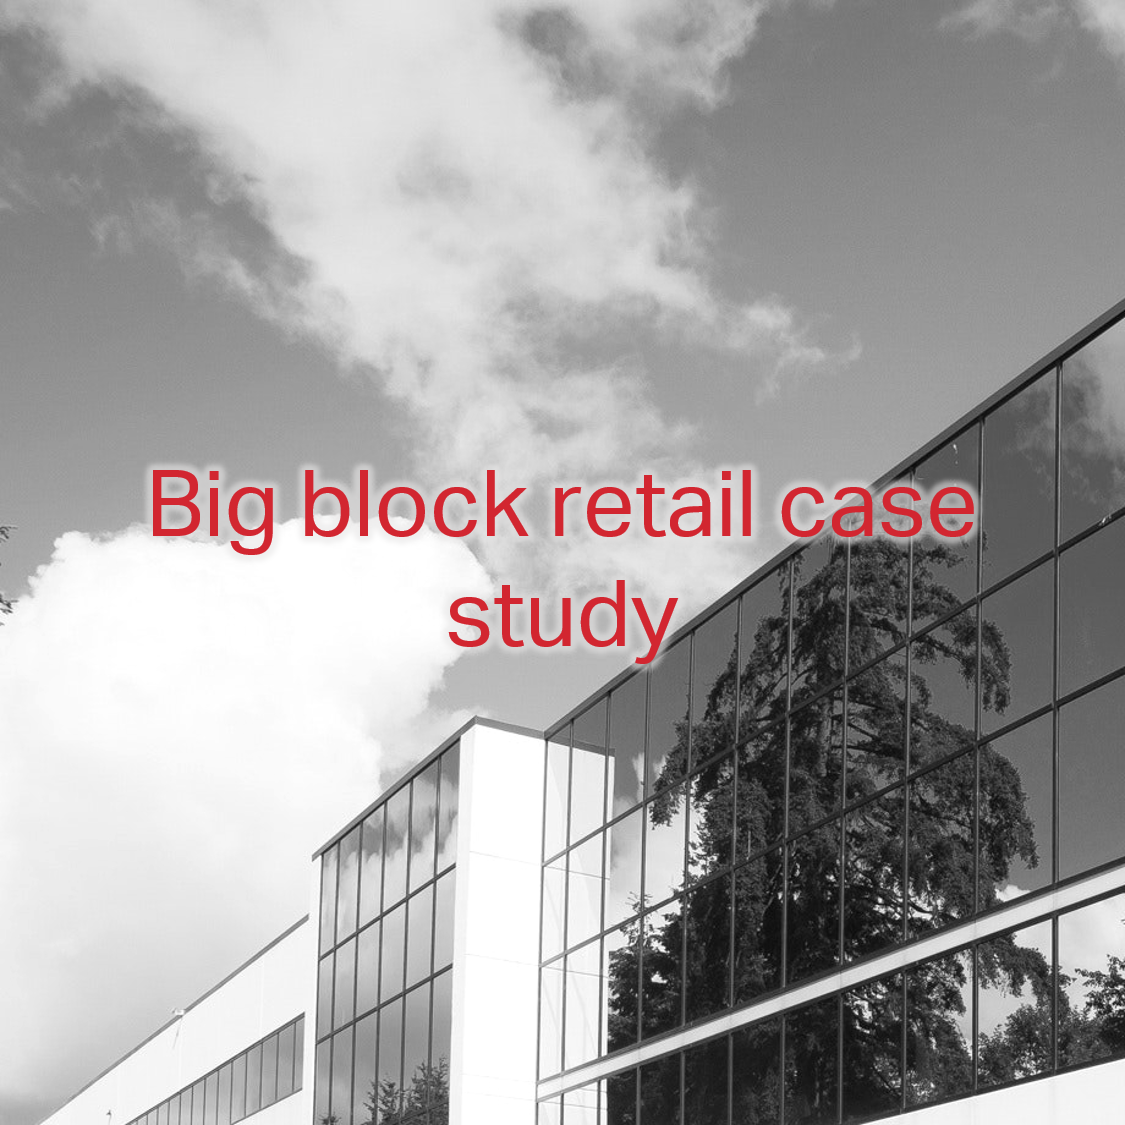 big block retail case study thumb.png